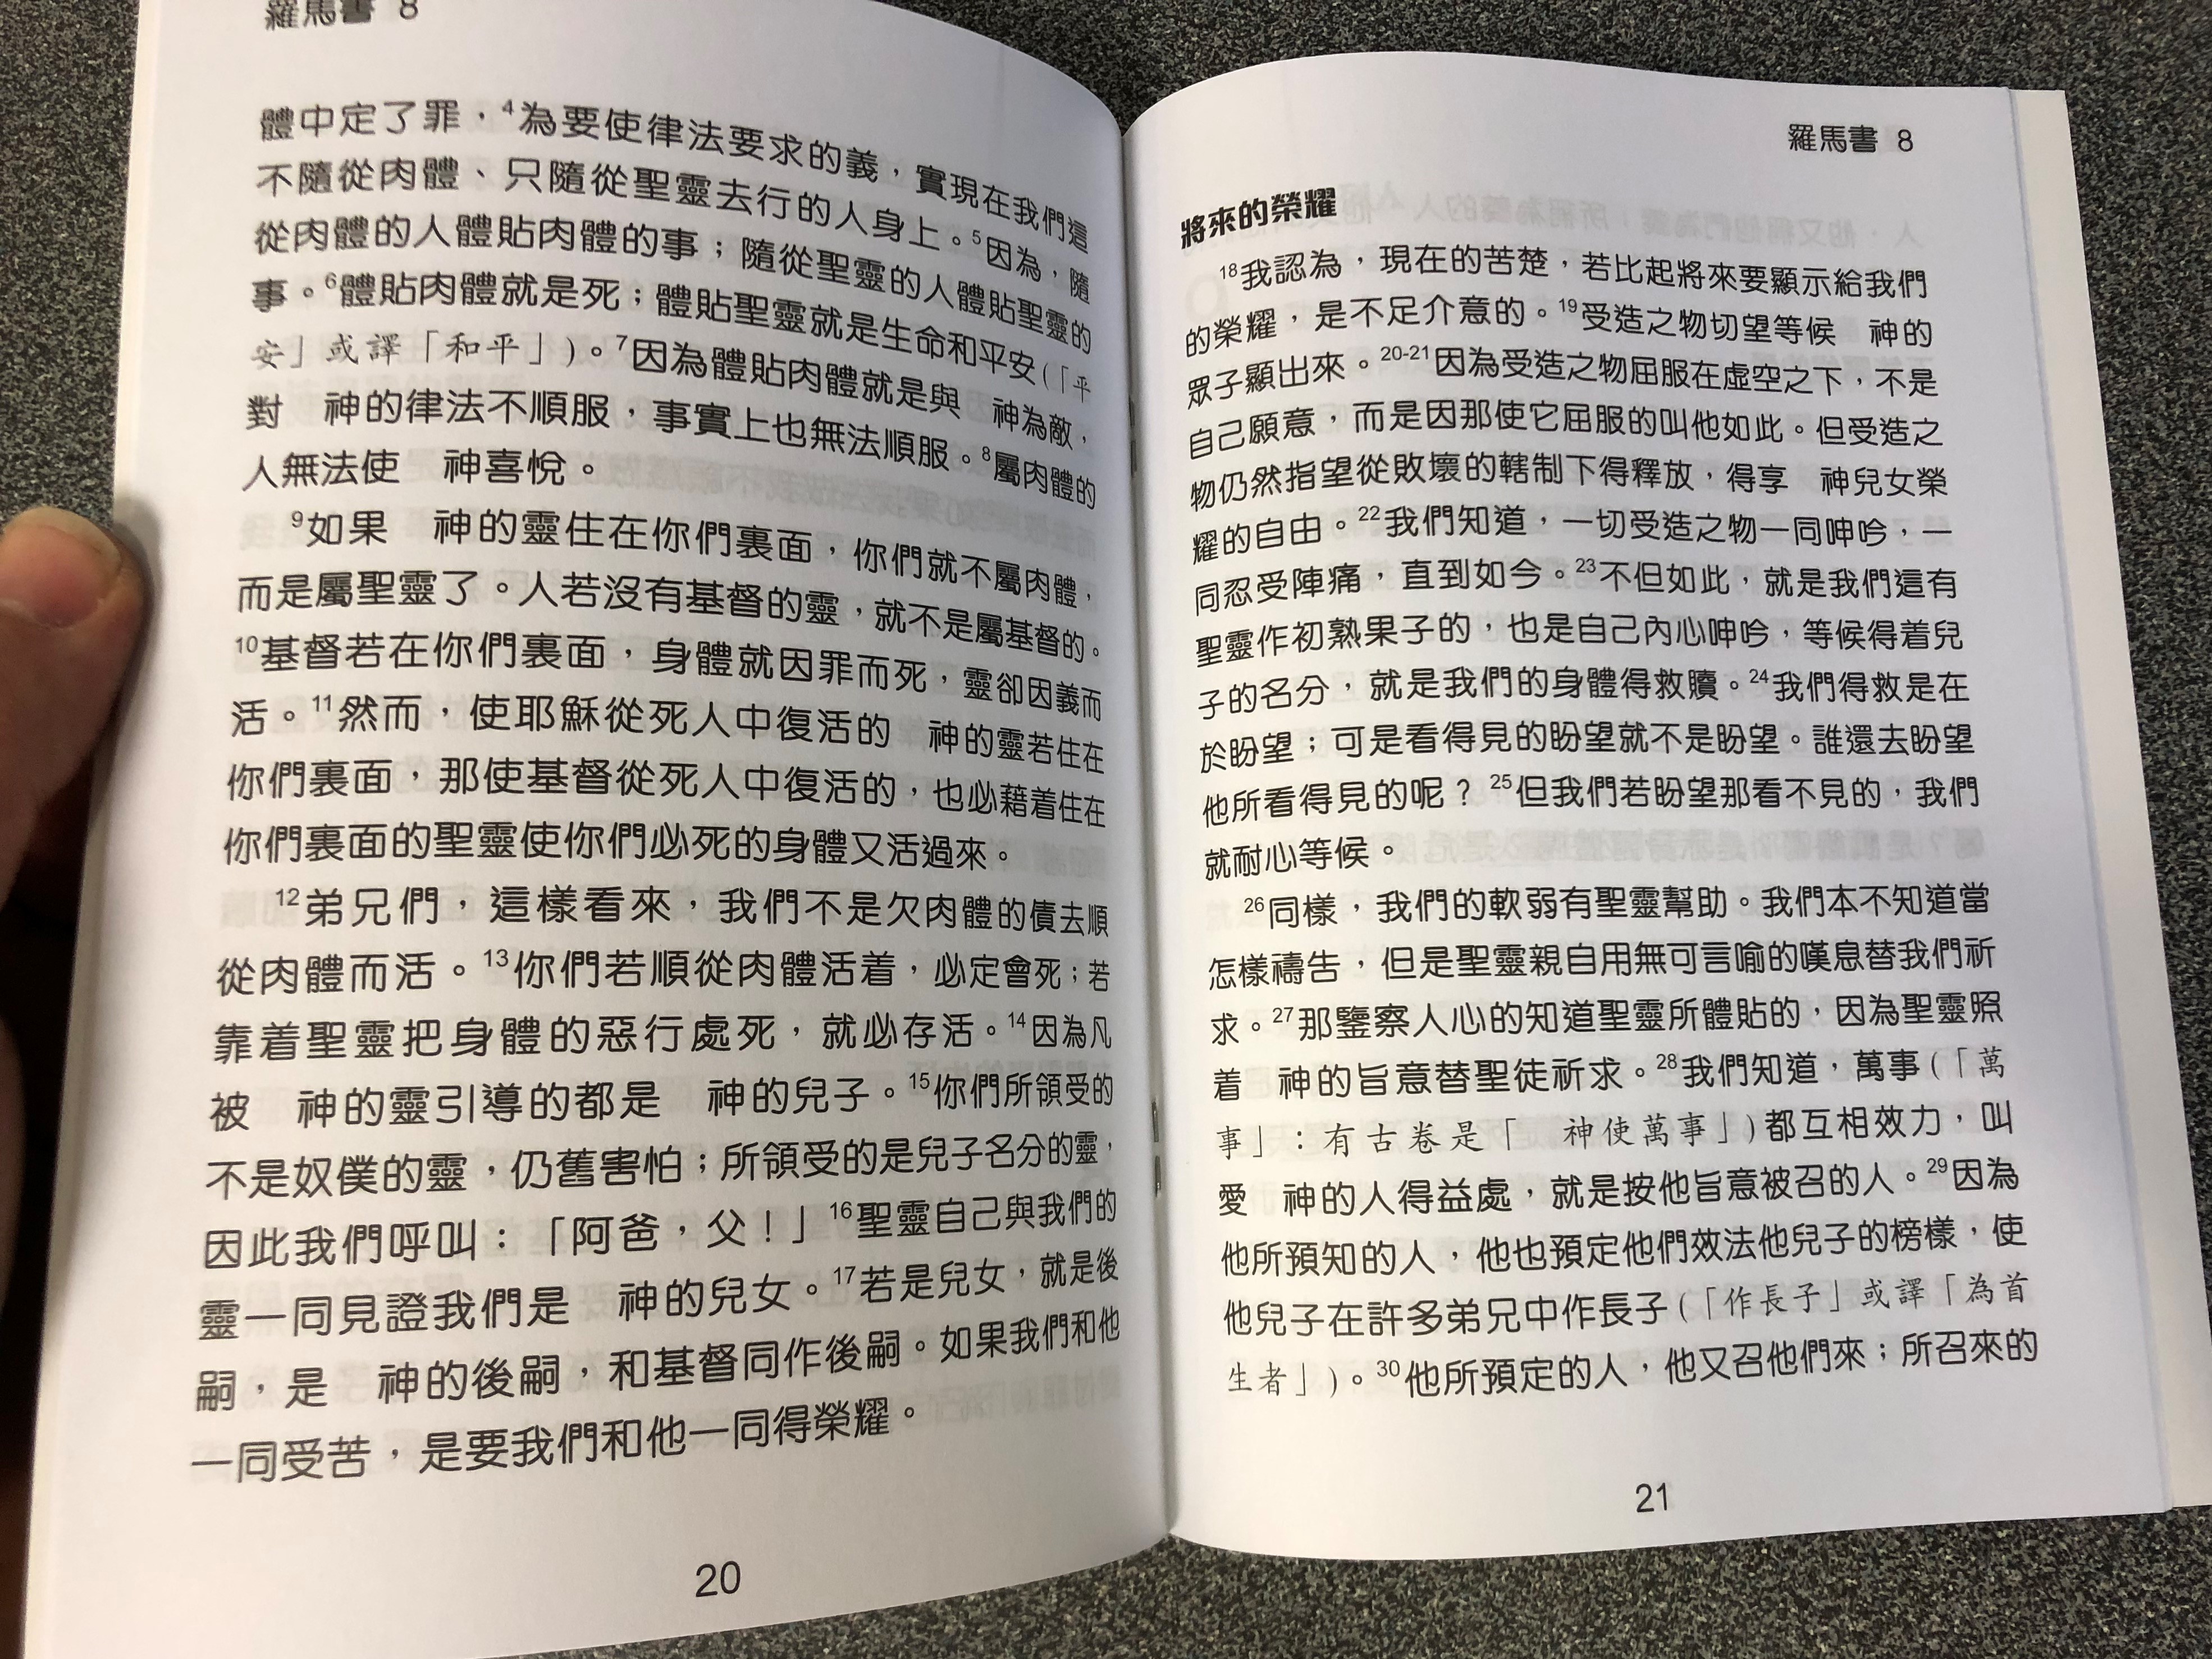 -romans-in-chinese-language-super-large-print-edition-revised-chinese-union-version-cu2010-hkbs-1-.jpg